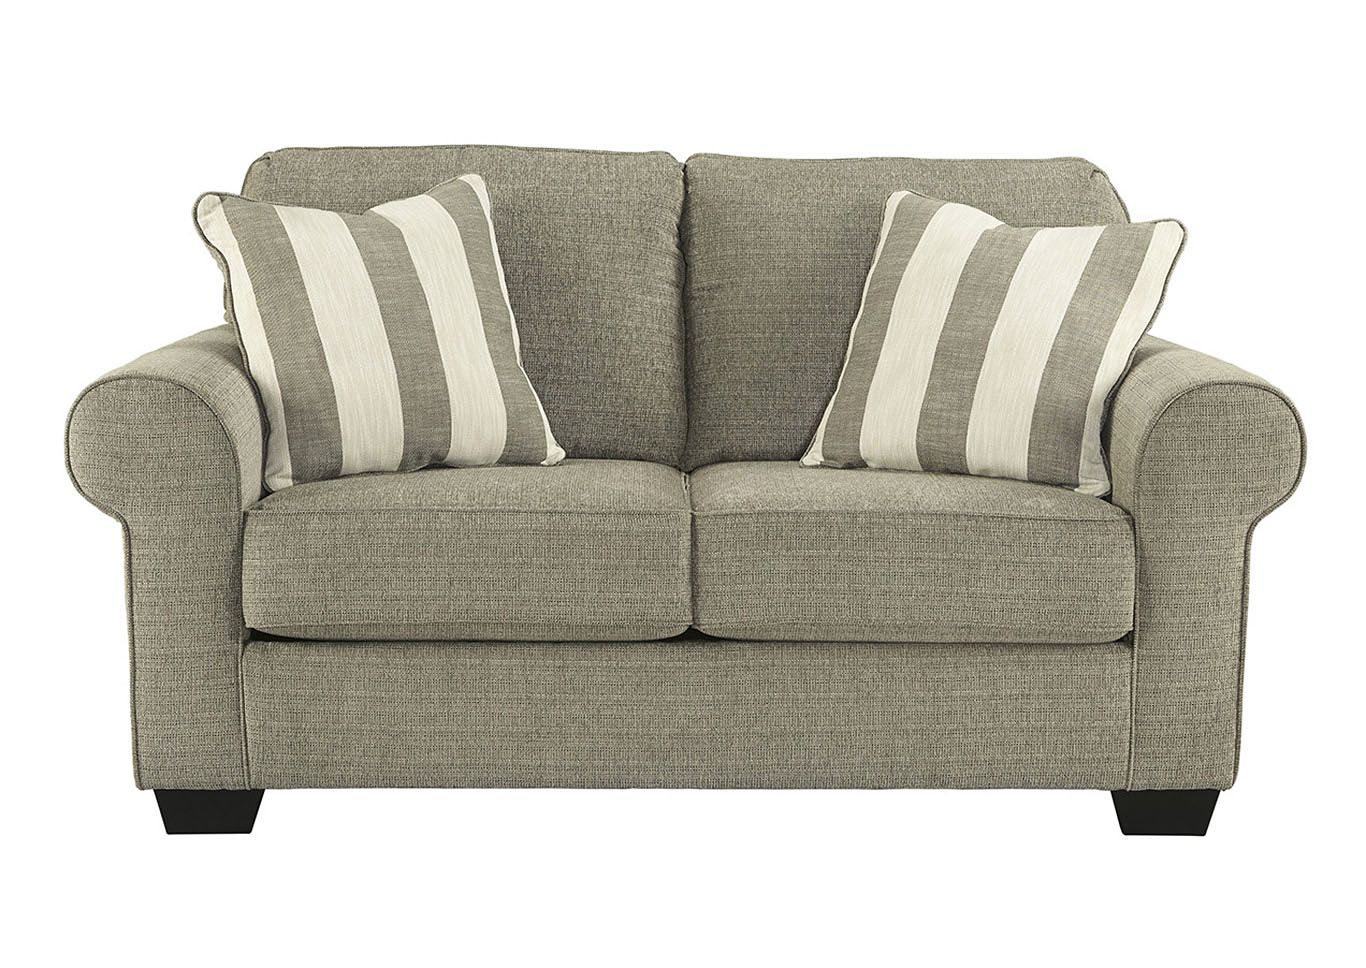 Baveria Fog Loveseat,Signature Design By Ashley